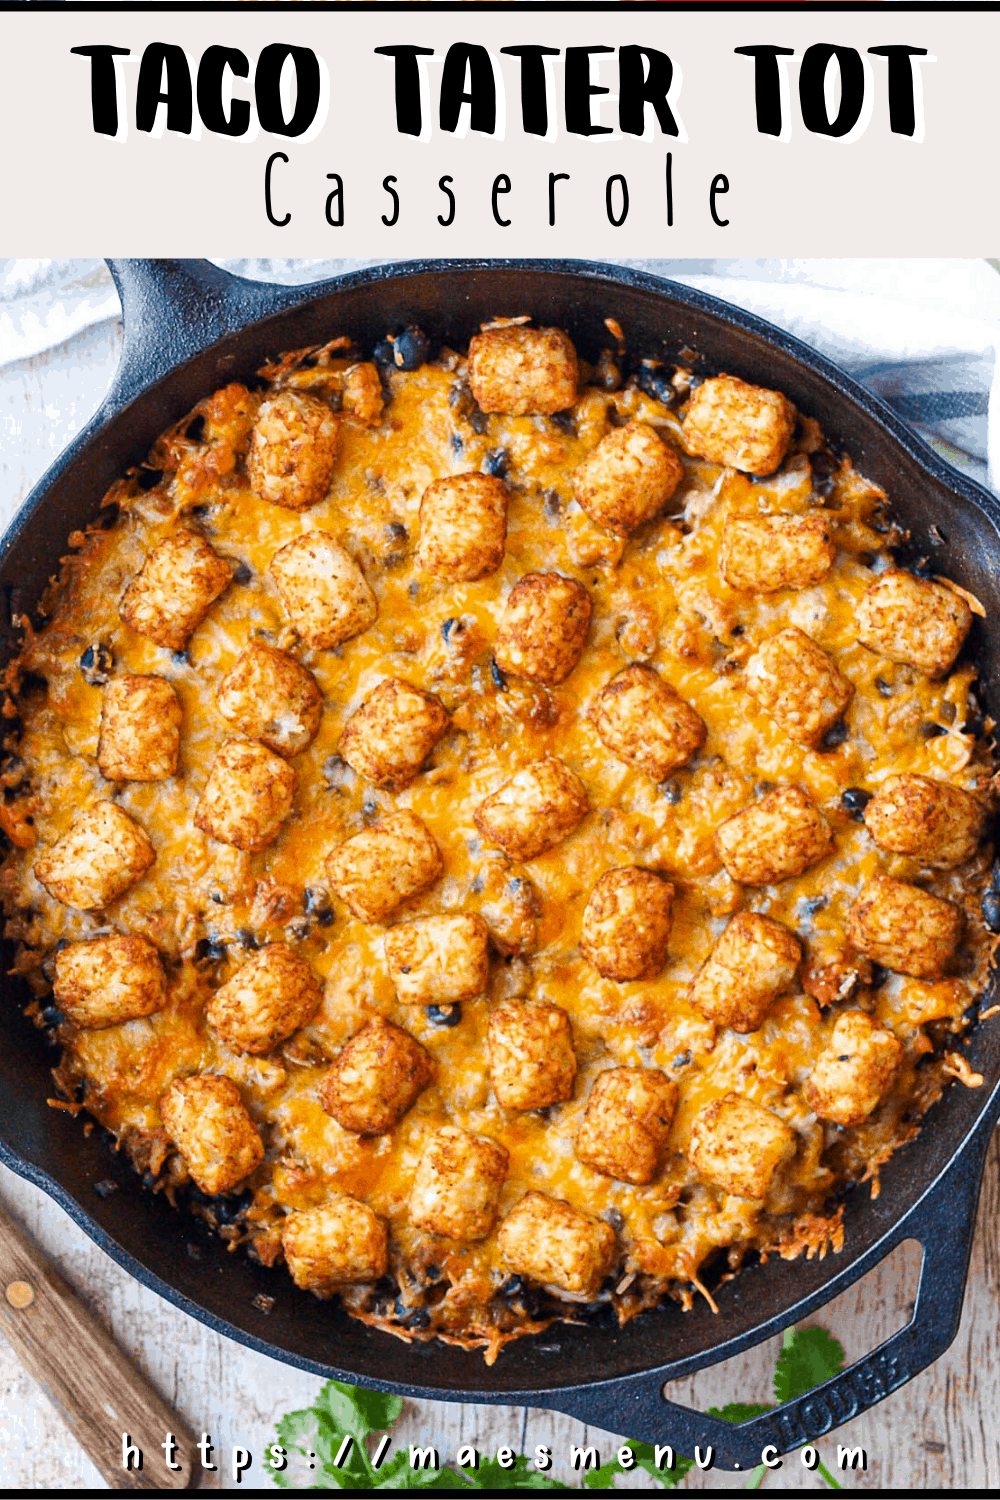 Pinterest pin for taco tater tot casserole with an overhead shot of a pan of the casserole.